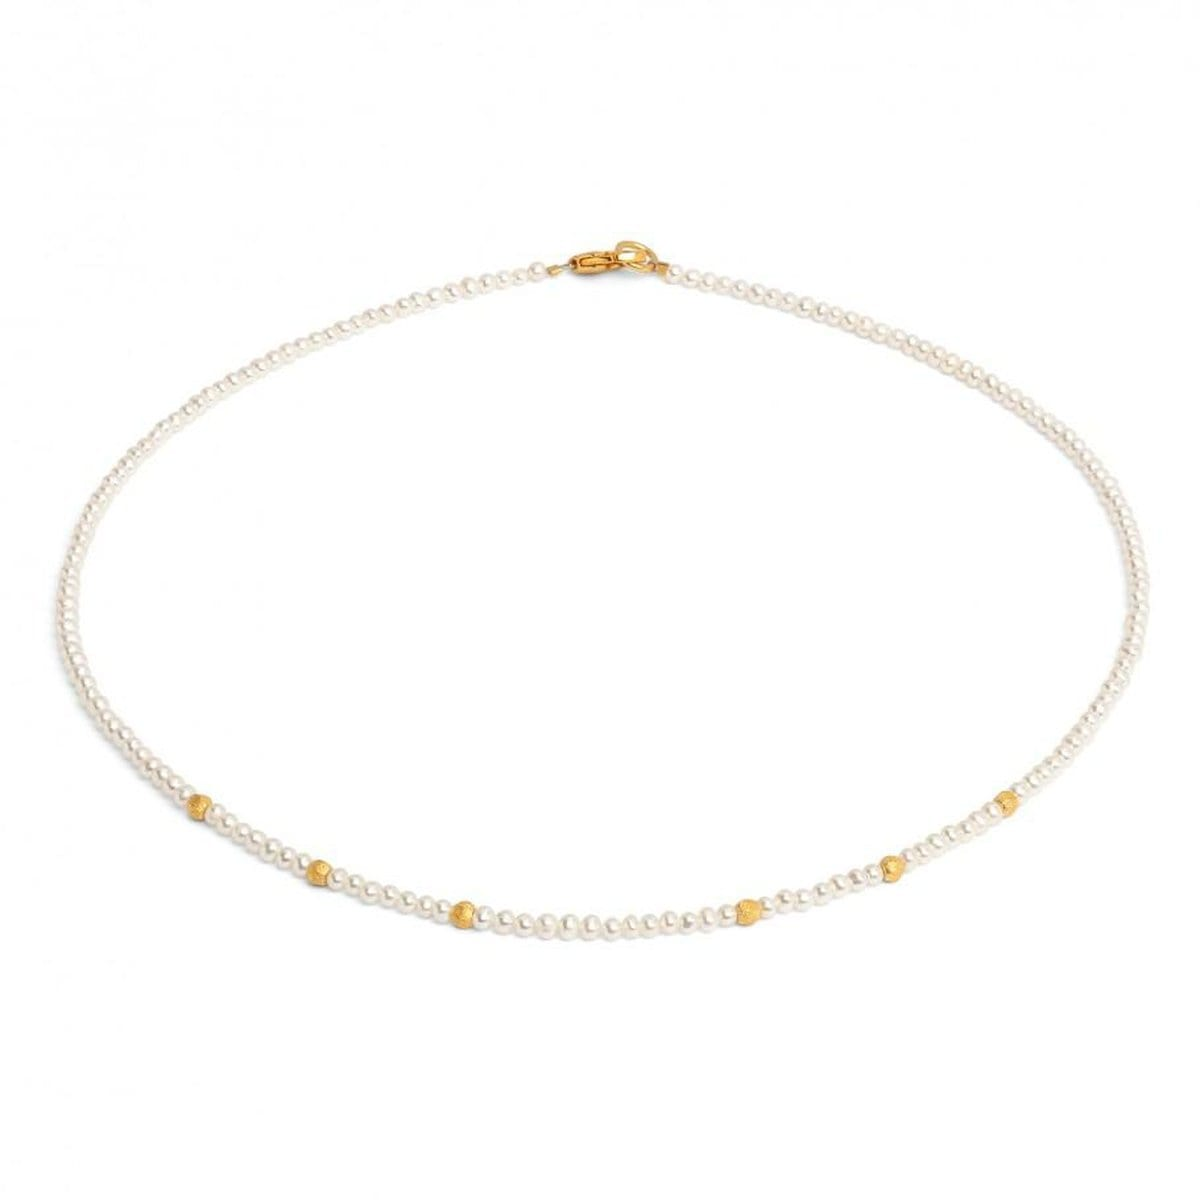 Latini Freshwater Pearl Necklace - 84466656-Bernd Wolf-Renee Taylor Gallery